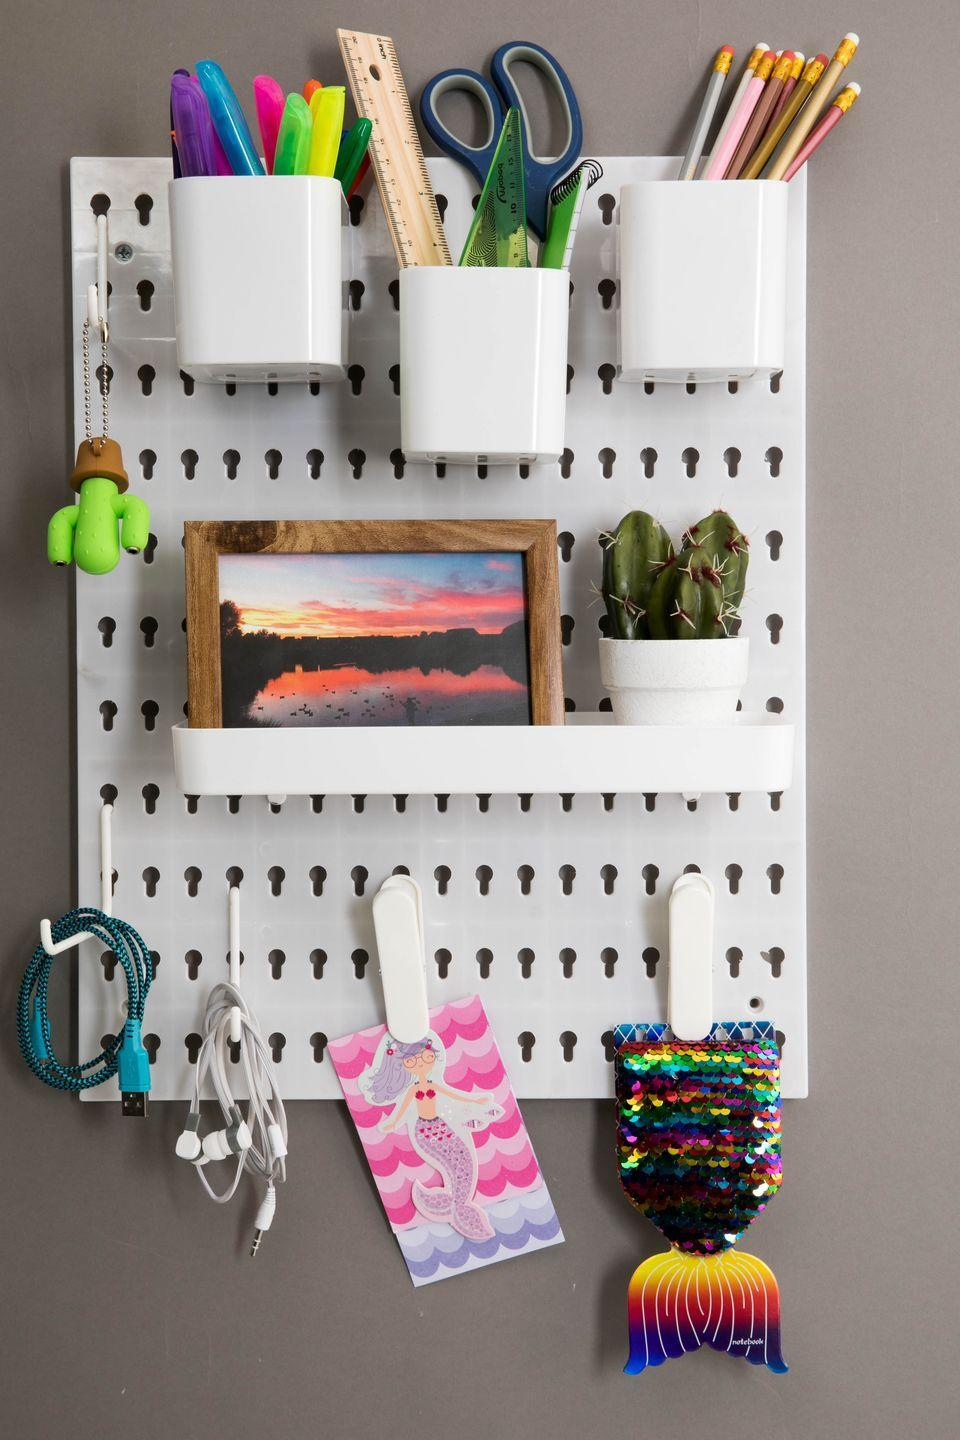 """<p>This £2 peg board — which quickly became a sensation on Instagram after it launched — is hailed for its practicality and style. We love that it can be used in any room, whether it be the study, garden shed or <a href=""""https://www.housebeautiful.com/uk/lifestyle/shopping/g27252656/kitchen-accessories/"""" rel=""""nofollow noopener"""" target=""""_blank"""" data-ylk=""""slk:kitchen"""" class=""""link rapid-noclick-resp"""">kitchen</a>. </p>"""